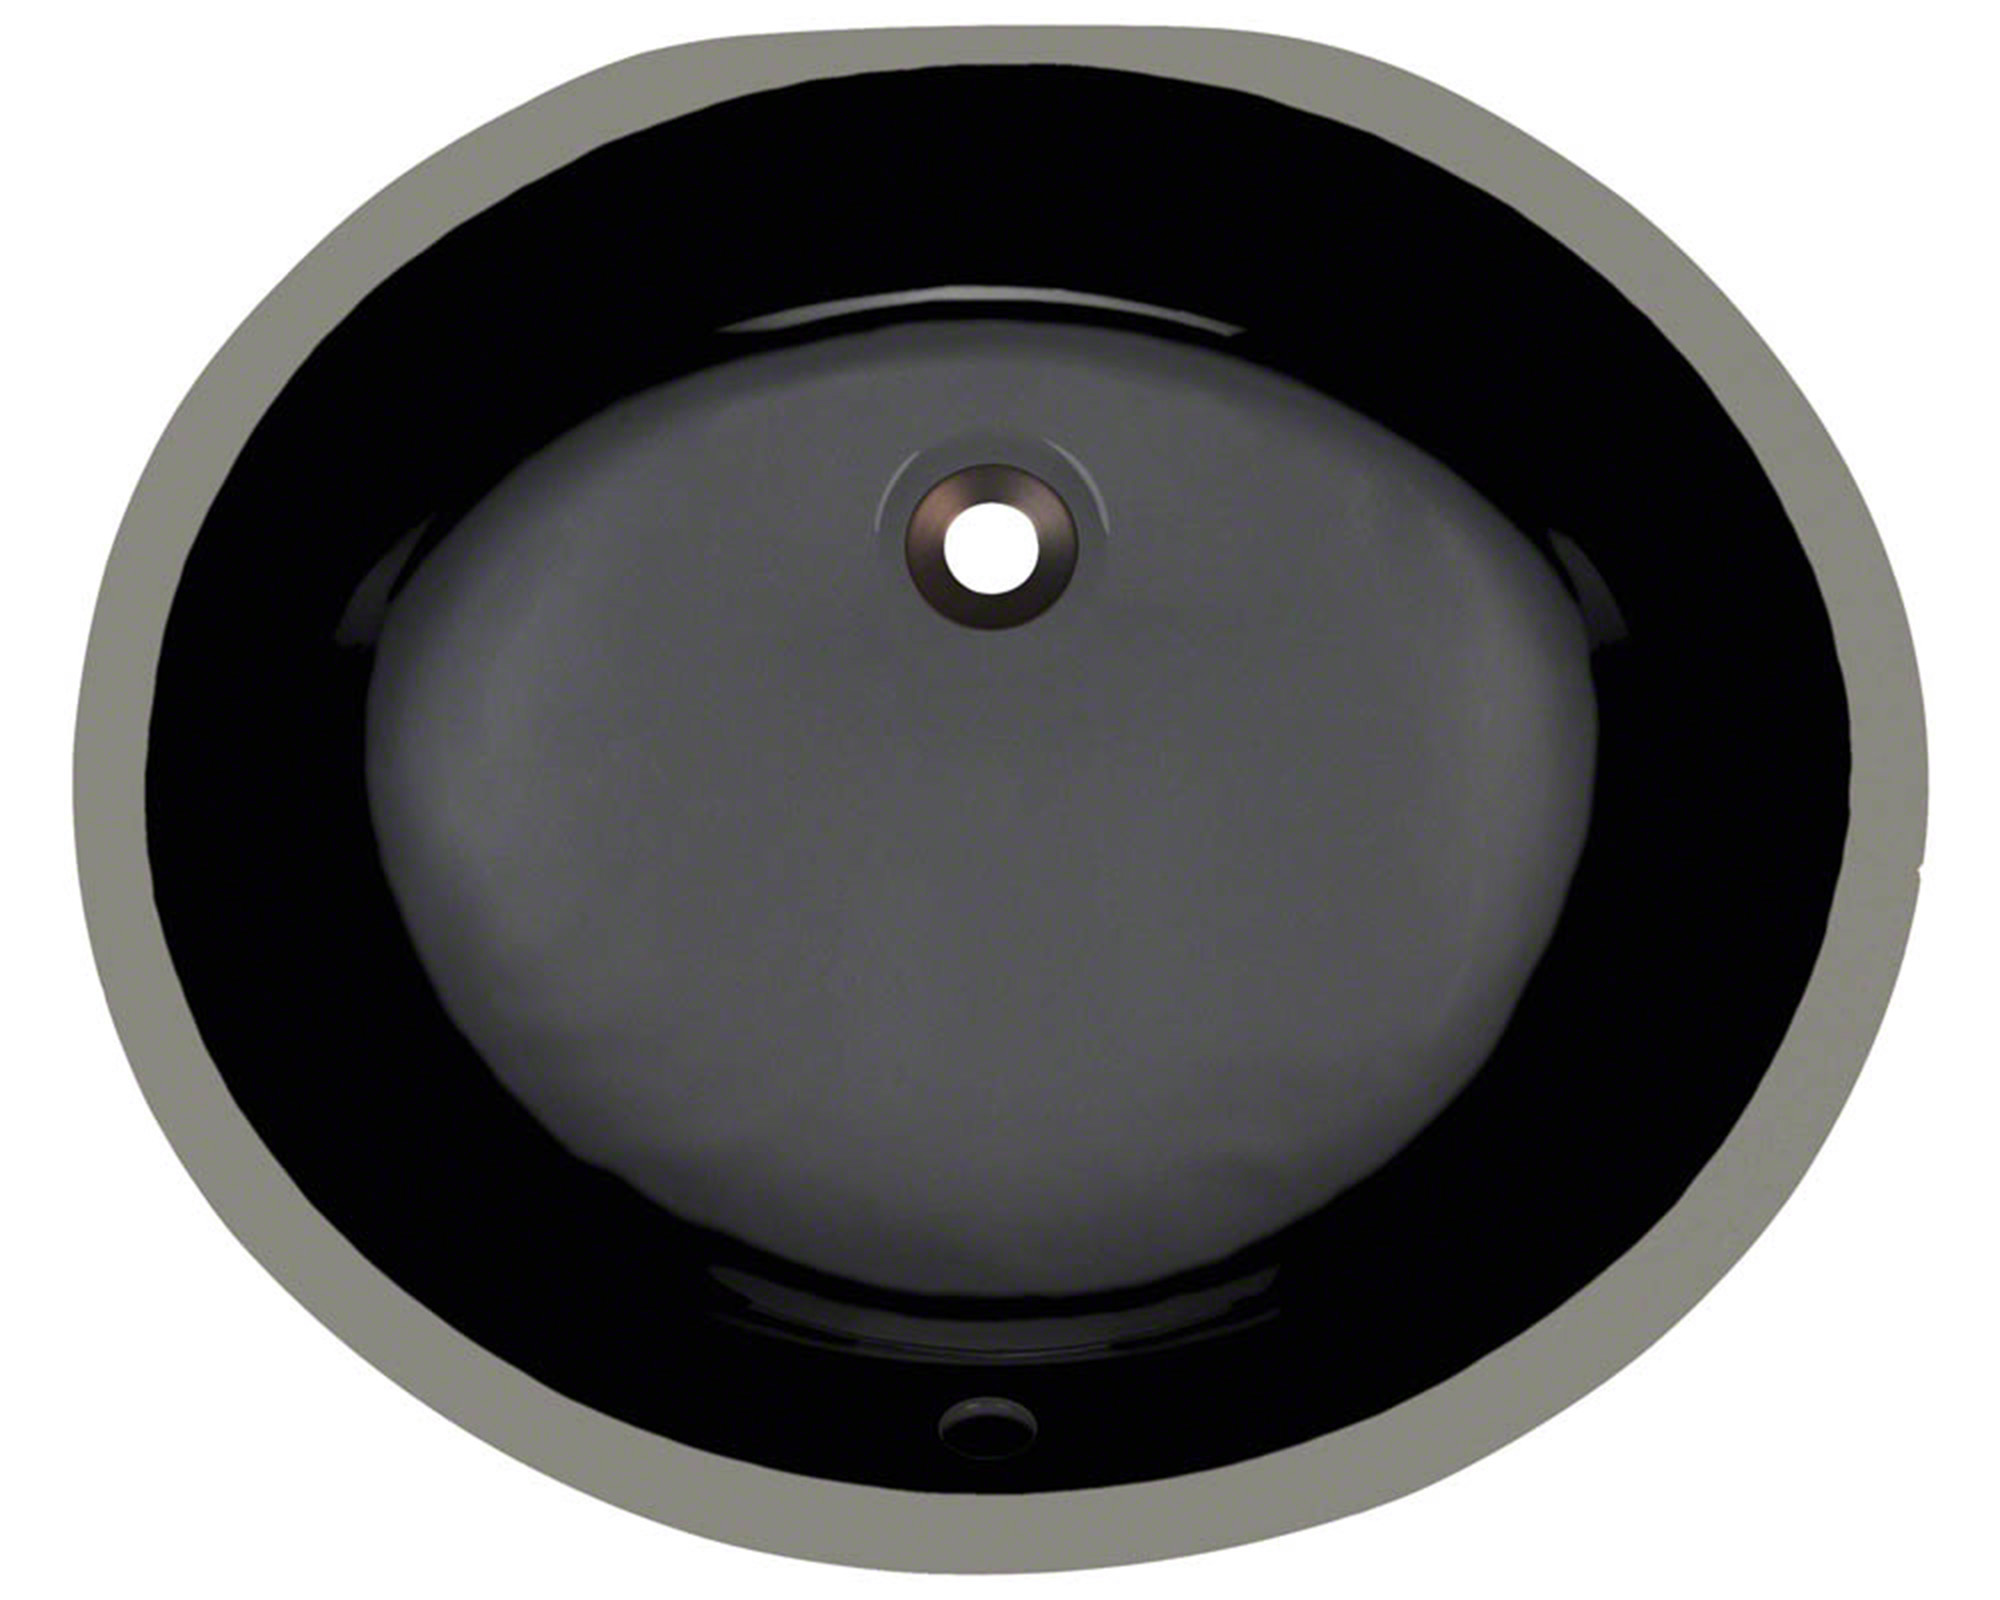 Polaris PUPM-bl Black Porcelain Bathroom Sink